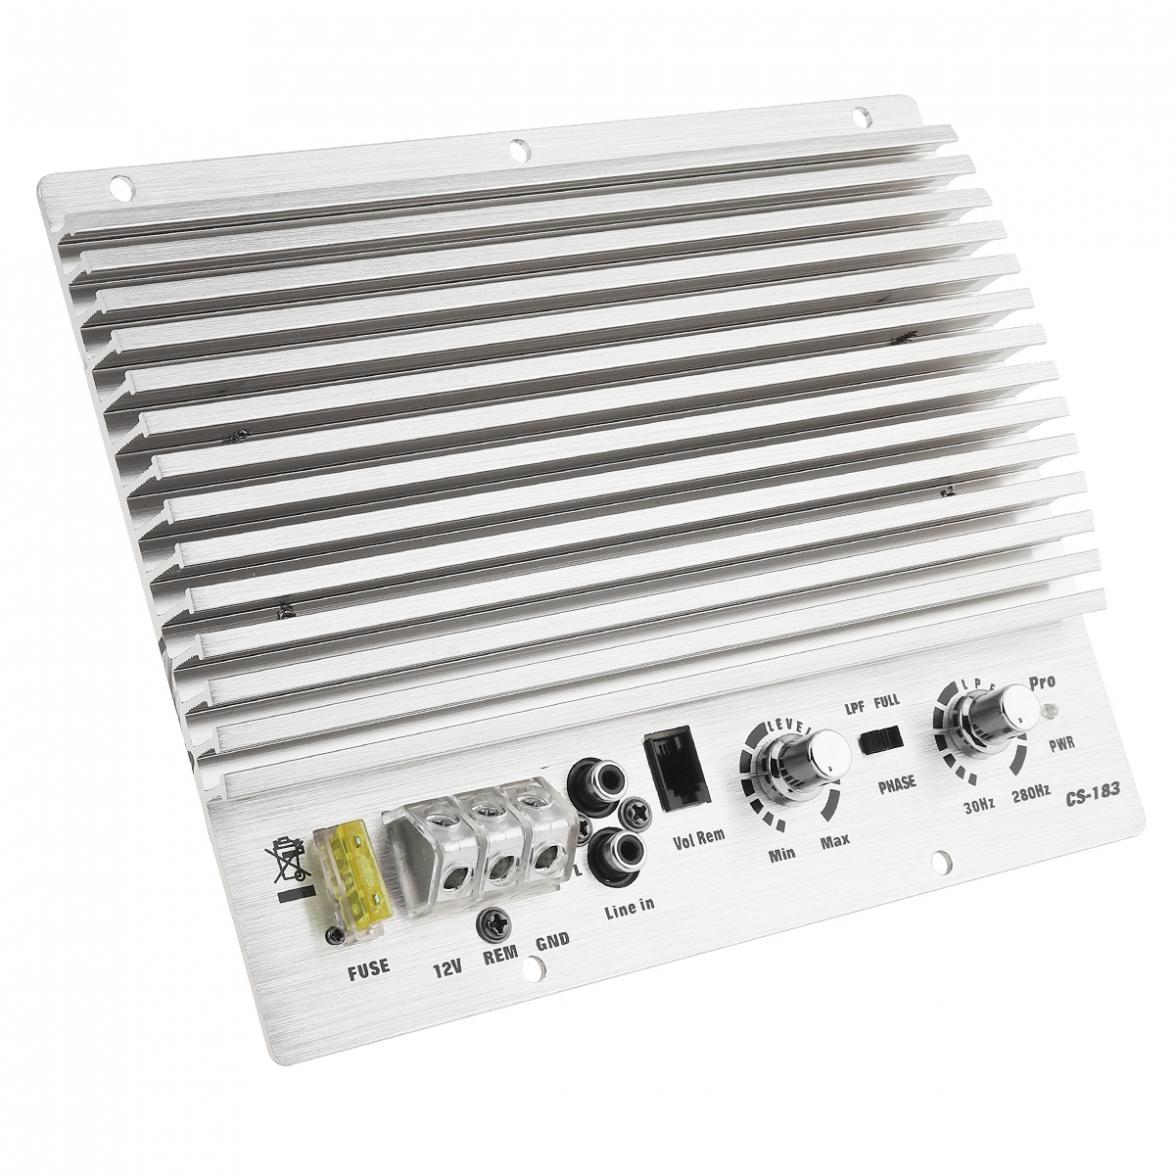 US $29 49 31% OFF|1000W Class AB Digital 2 Channel Aluminum Alloy Silver  Car Audio AMP Subwoofer Amplifier Universal Auto Audio Power Amplifier-in